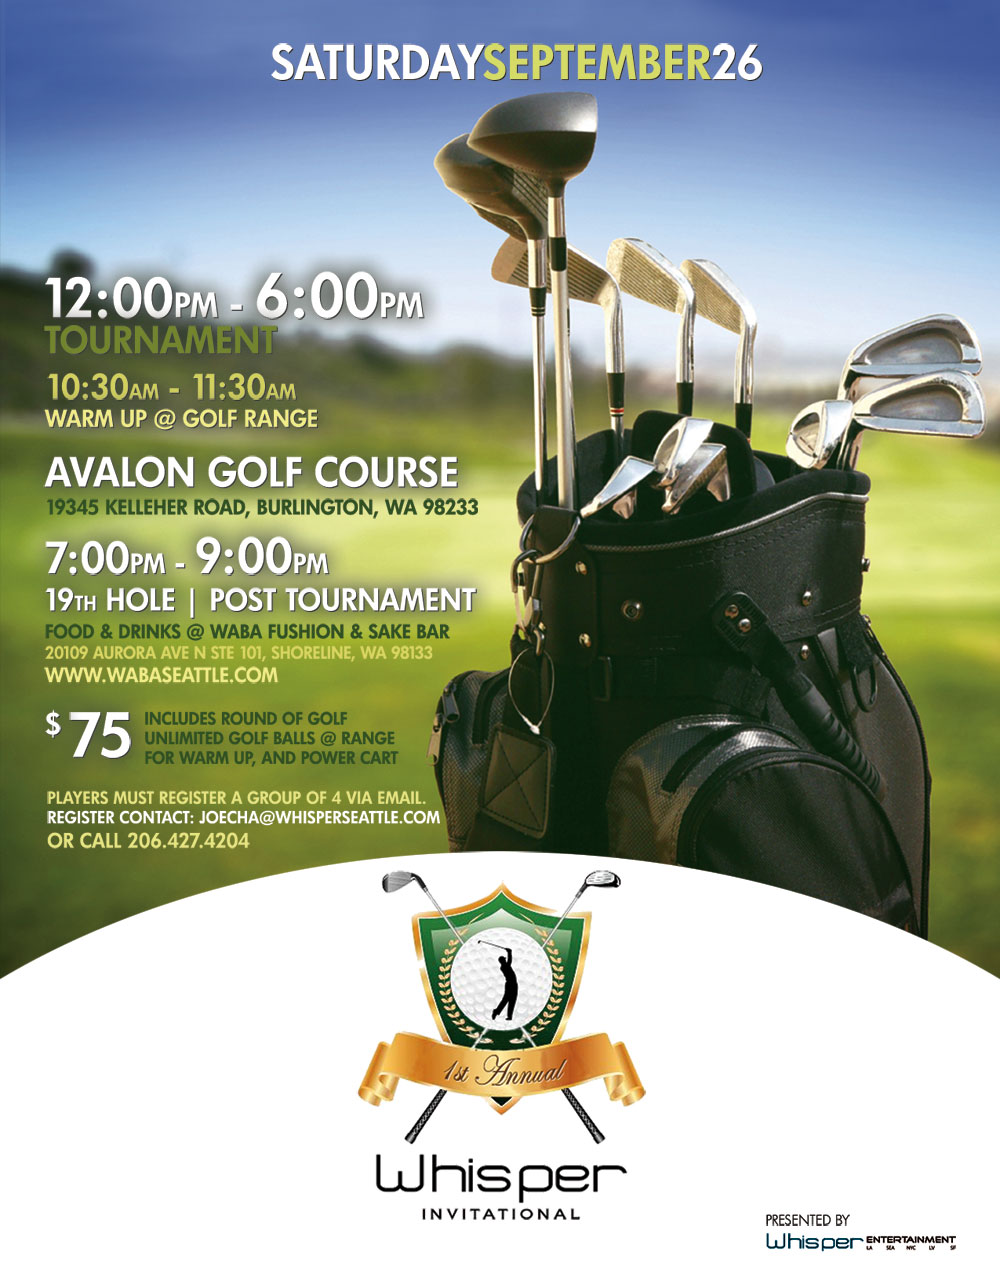 whisper-entertainment-golf-tournament-flyer.jpg